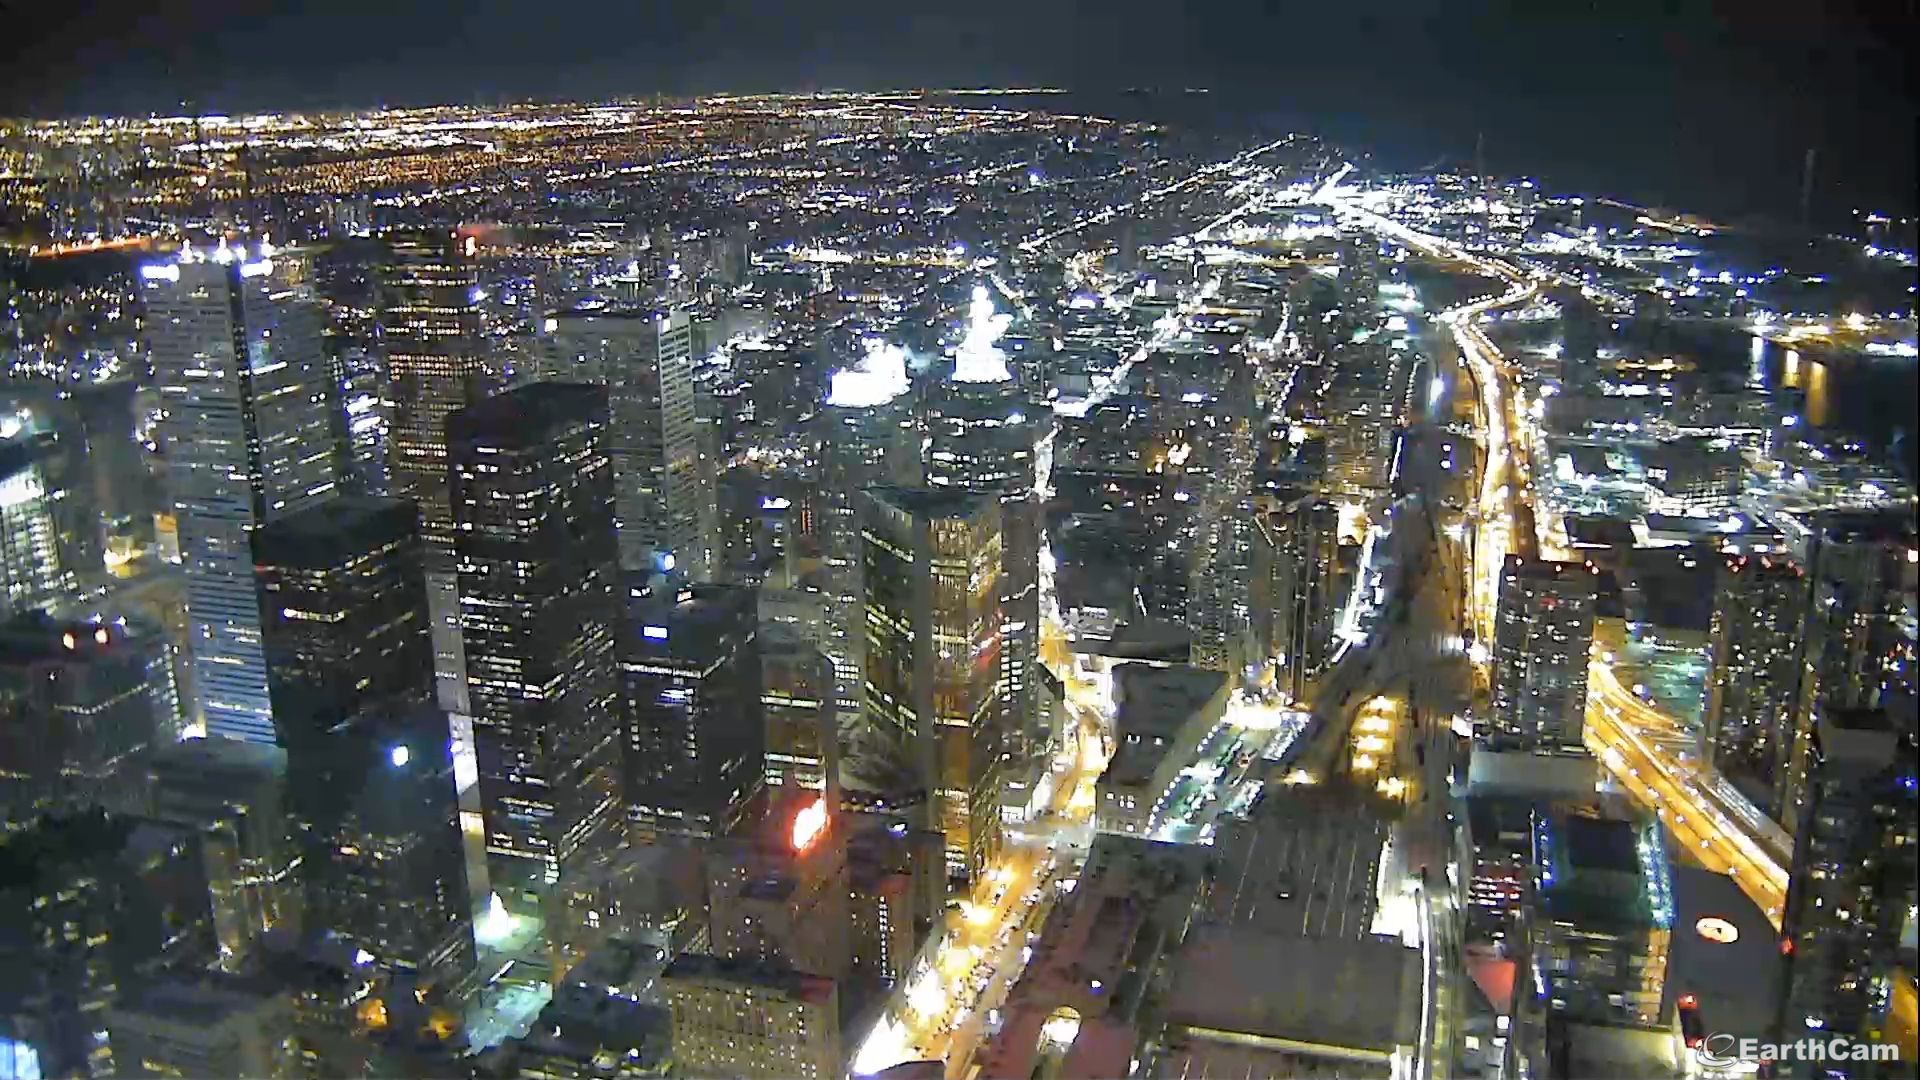 Visit toronto canada with earthcams live cn tower cam east visit toronto canada with earthcams live cn tower cam east view https gumiabroncs Gallery